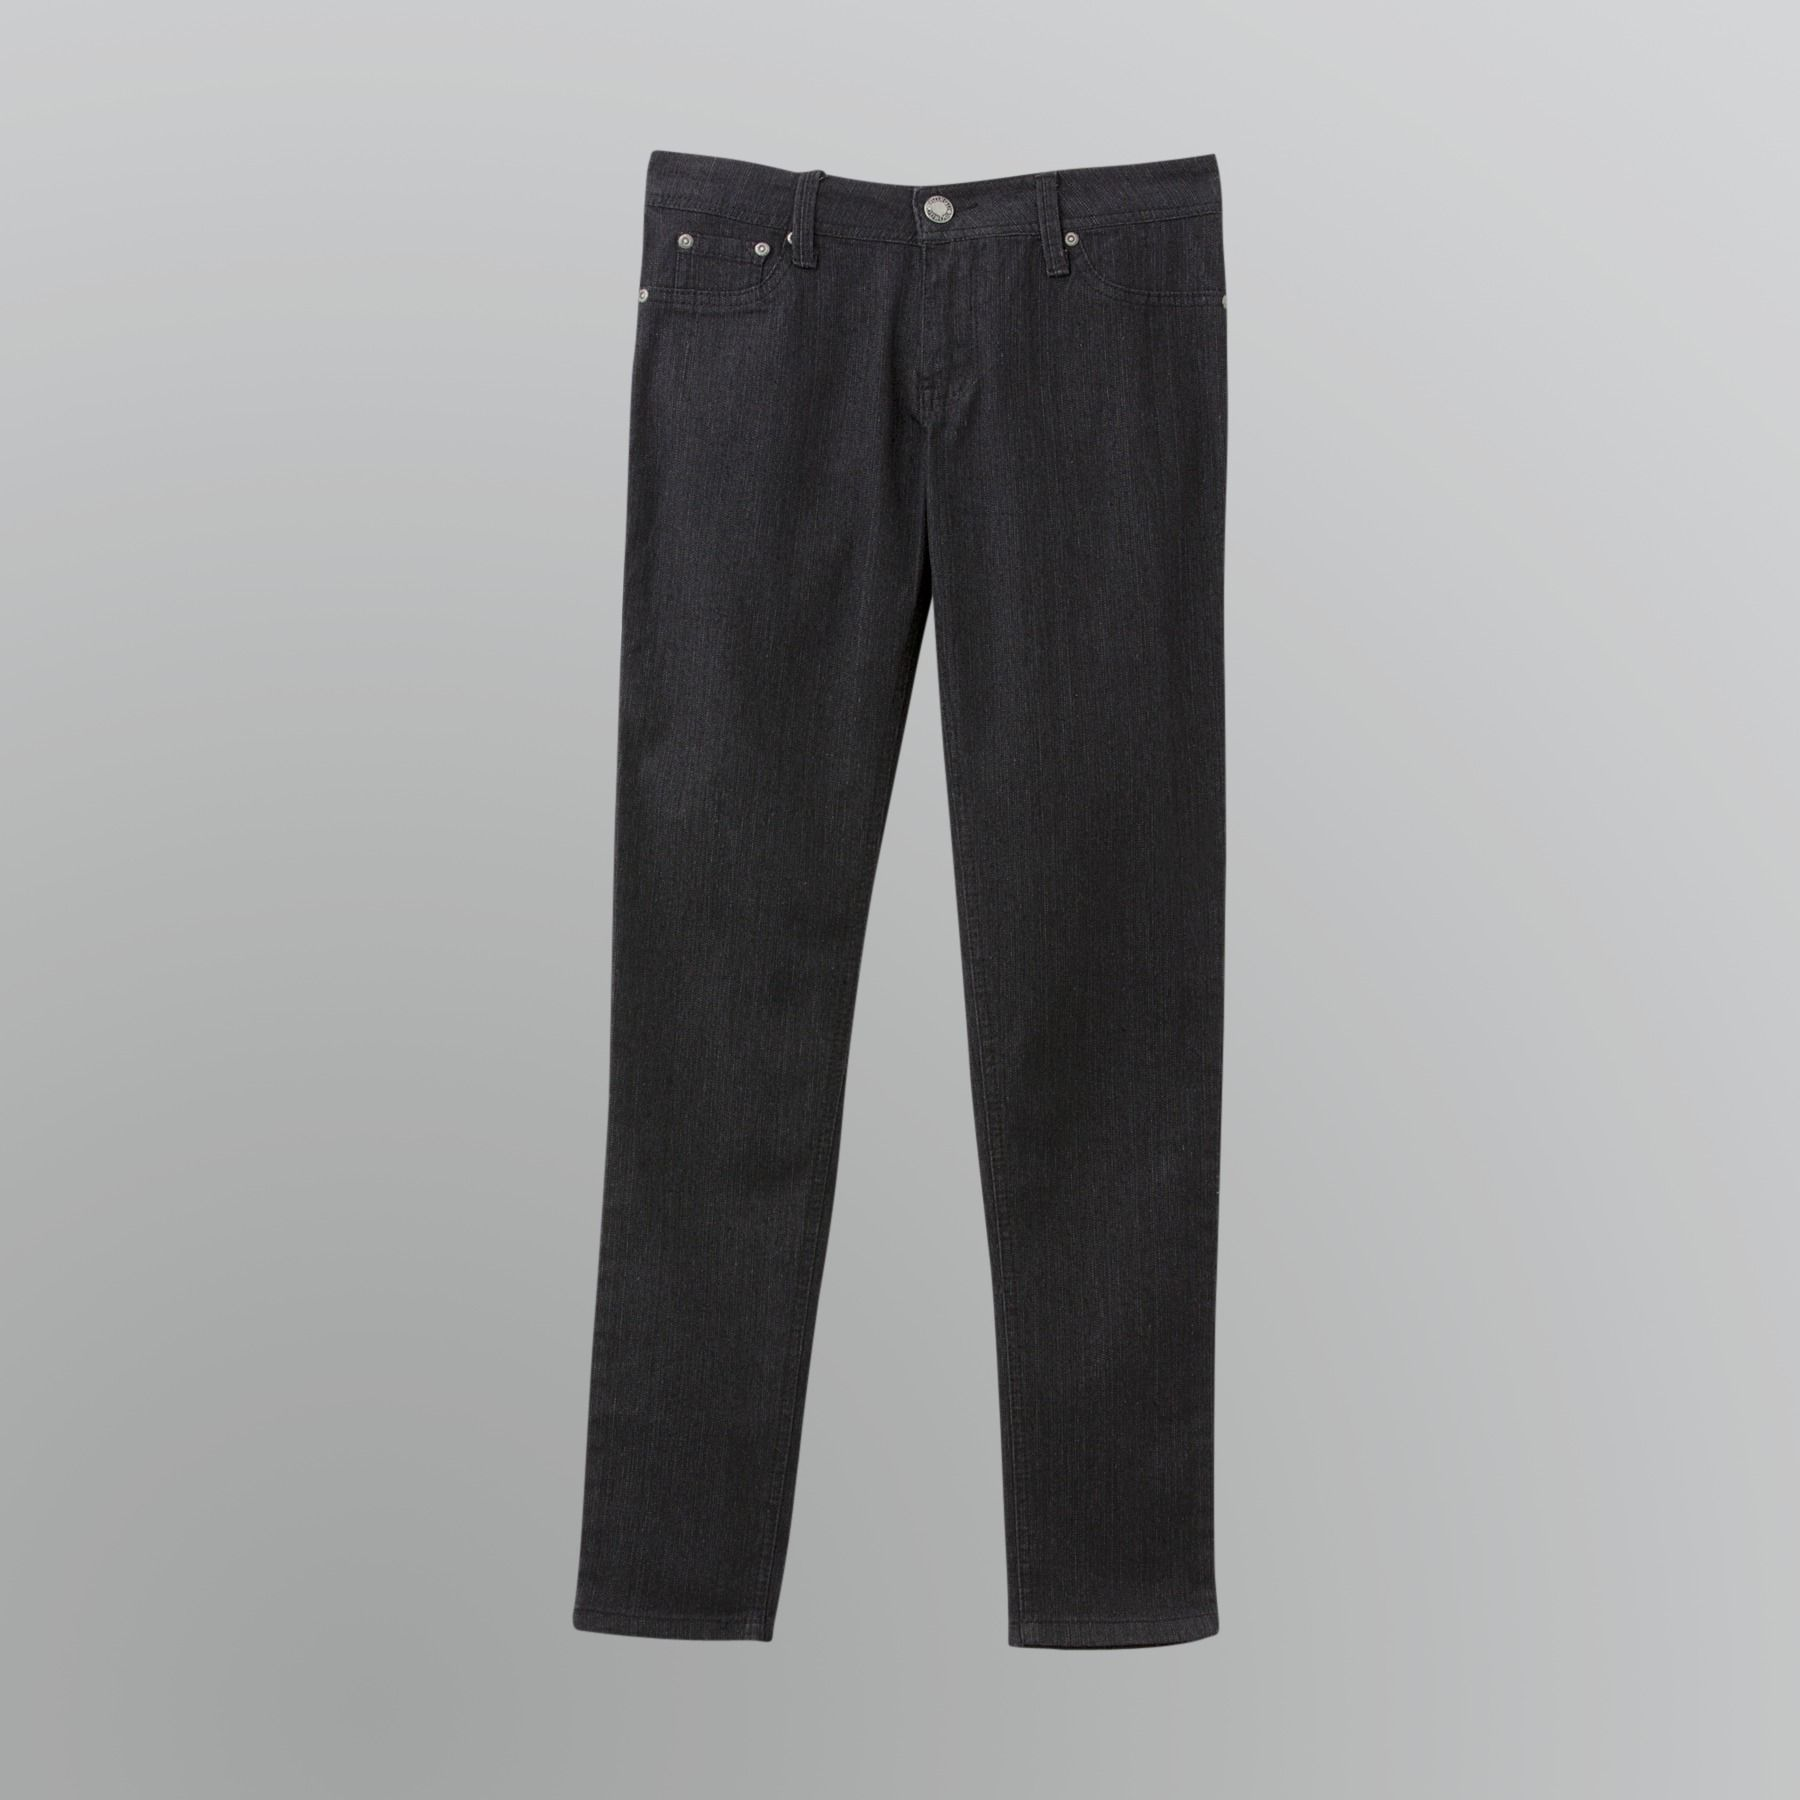 Bongo Juniors' Black Rinse Jegging at Sears.com